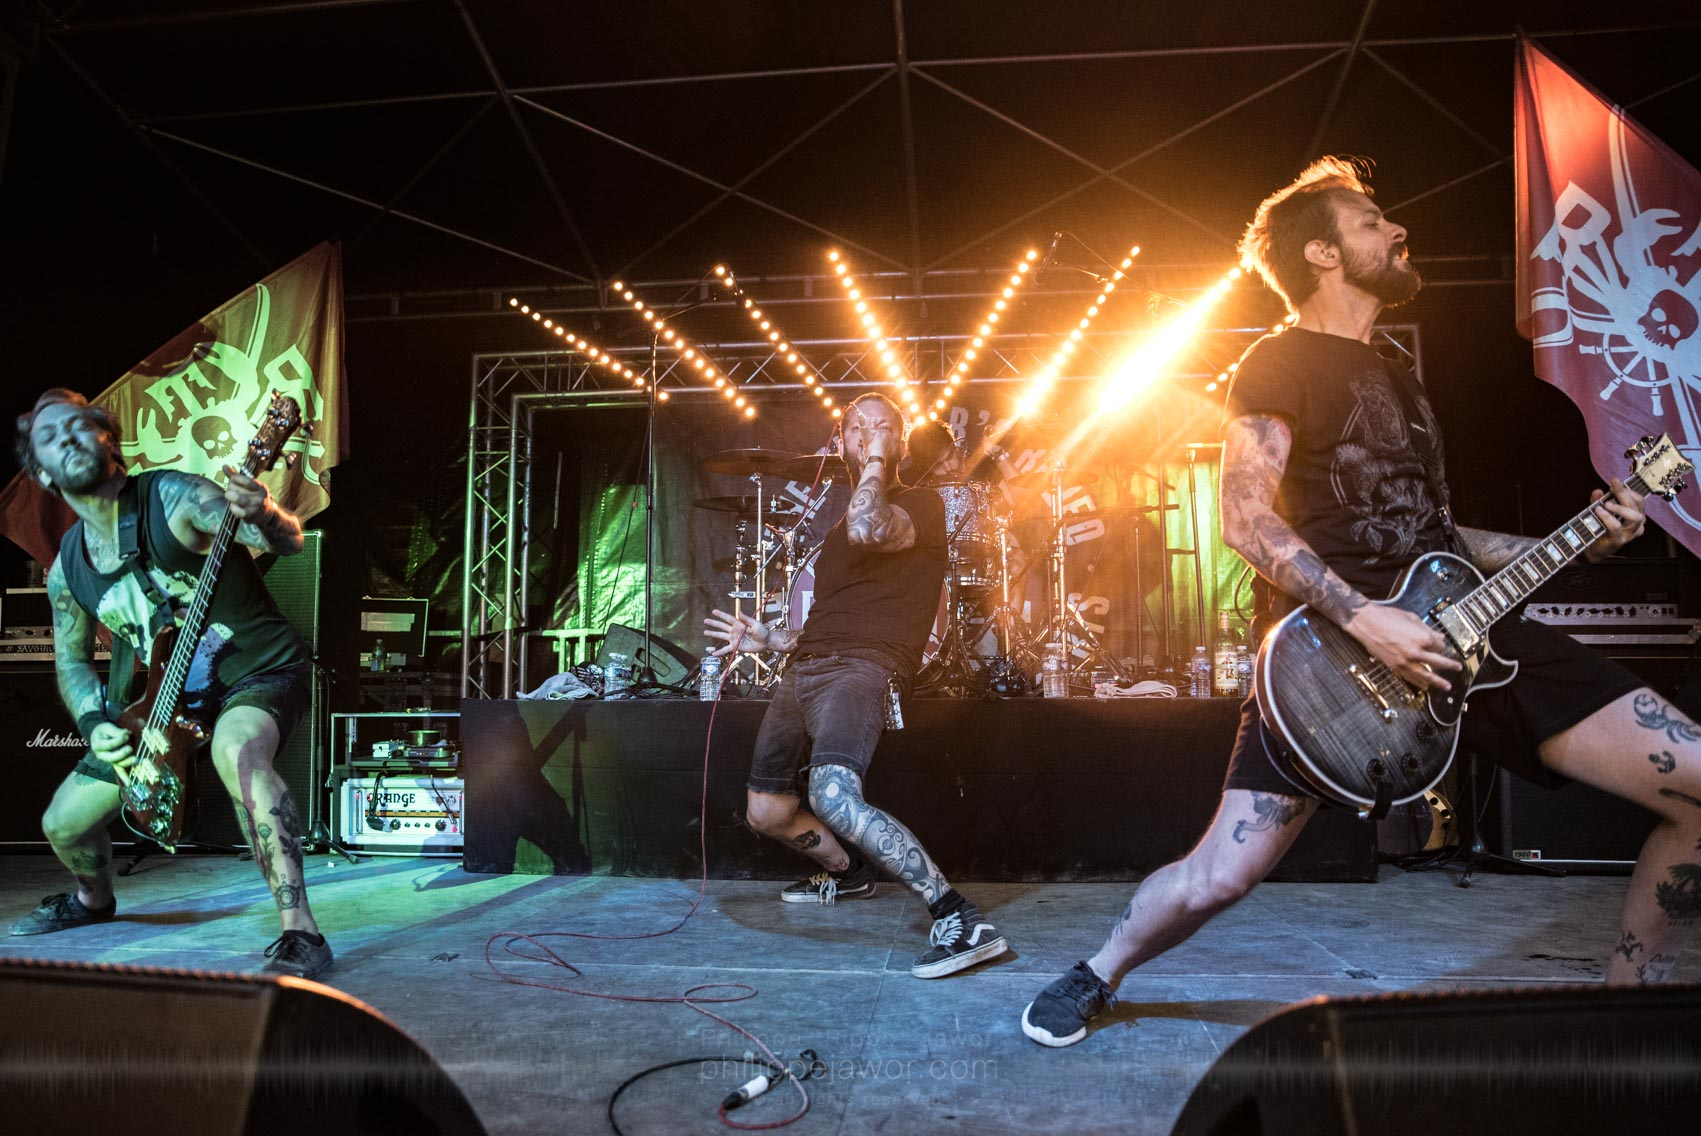 The Butcher's Rodeo @ Sylak Open Air festival, Saint Maurice de Gourdans, August 2017.  On assignment for Metal Obs' Magazine All rights reserved.